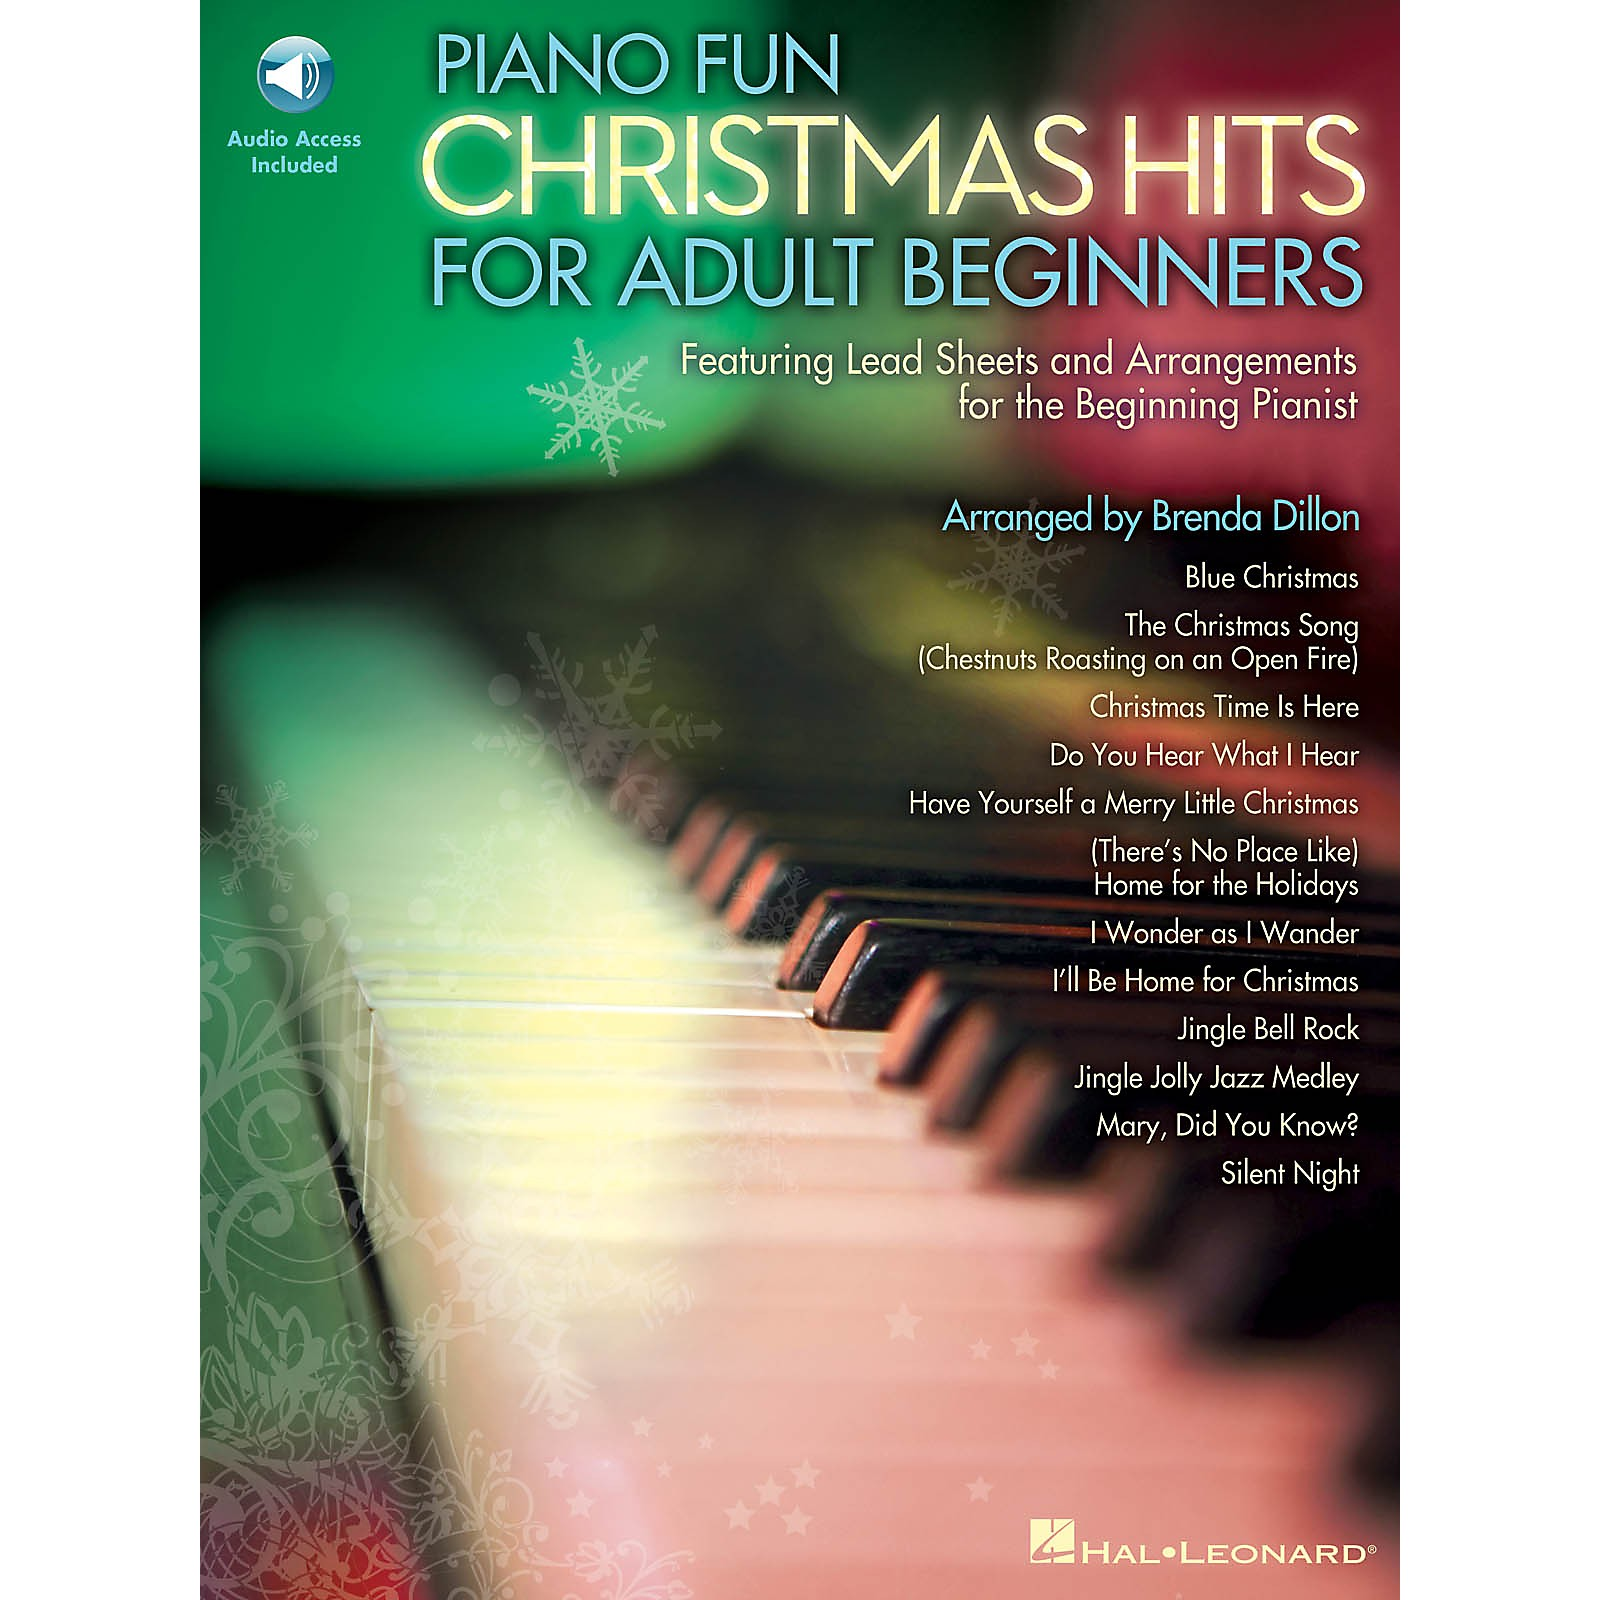 Hal Leonard Piano Fun - Christmas Hits for Adult Beginners Educational Piano Library Series Softcover Audio Online